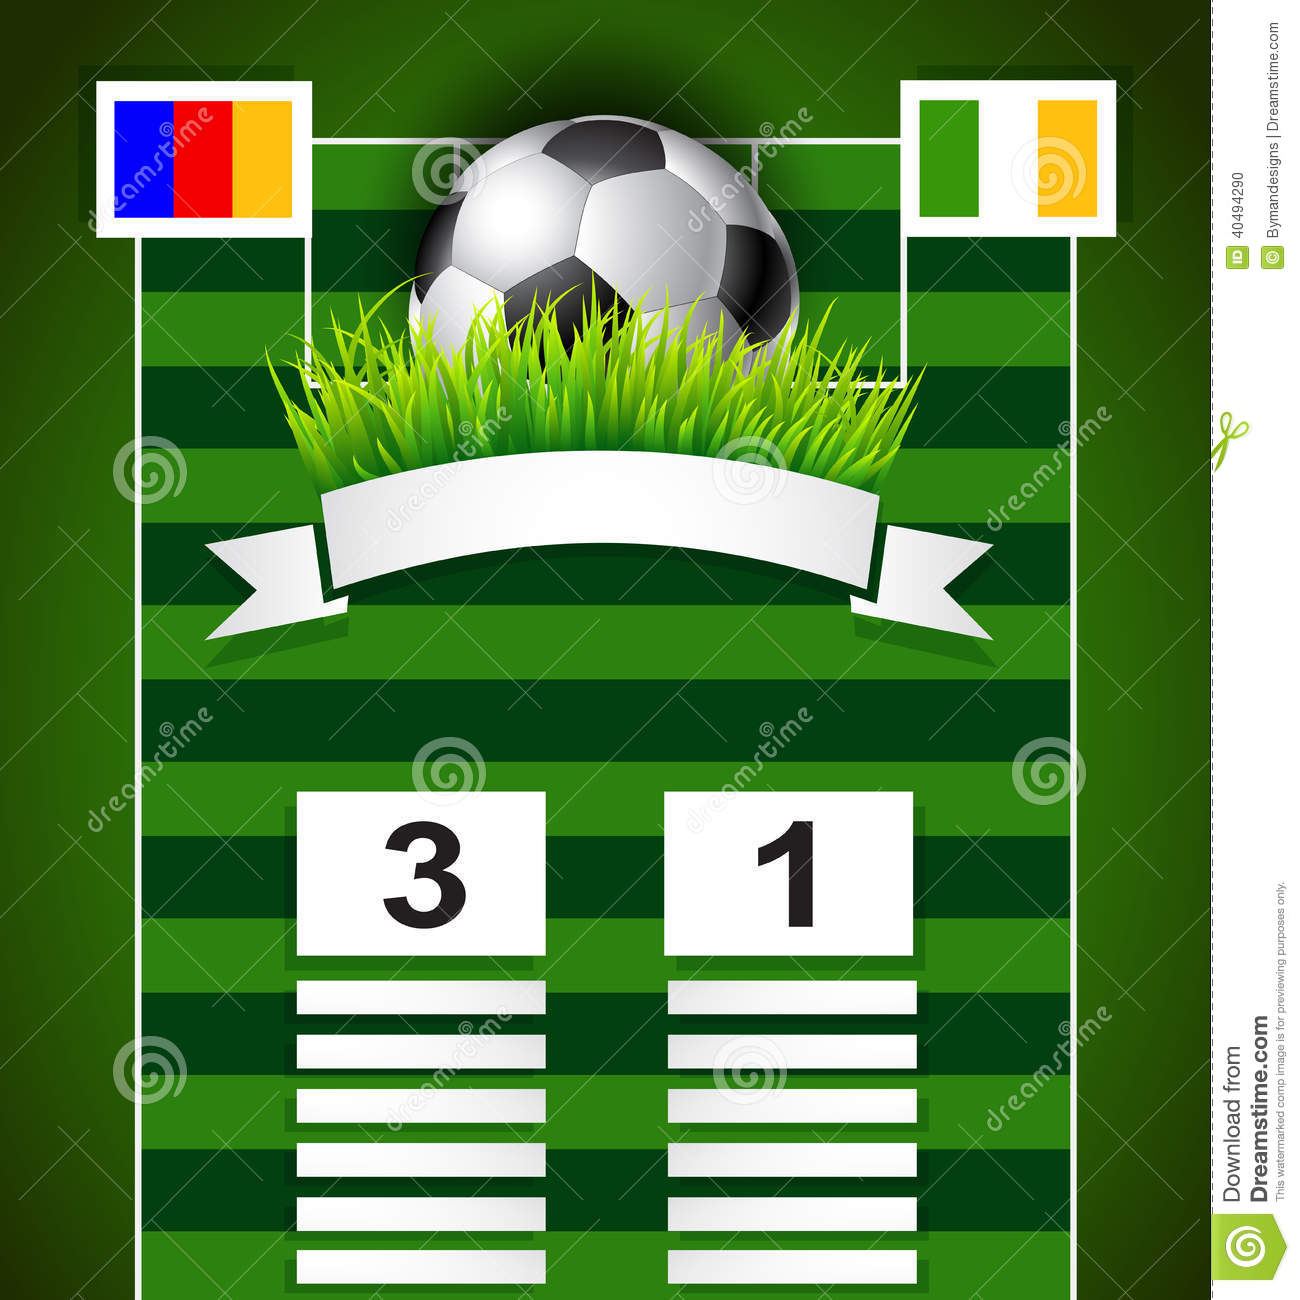 Soccer scoreboard design on field with copy space stock for Copy design